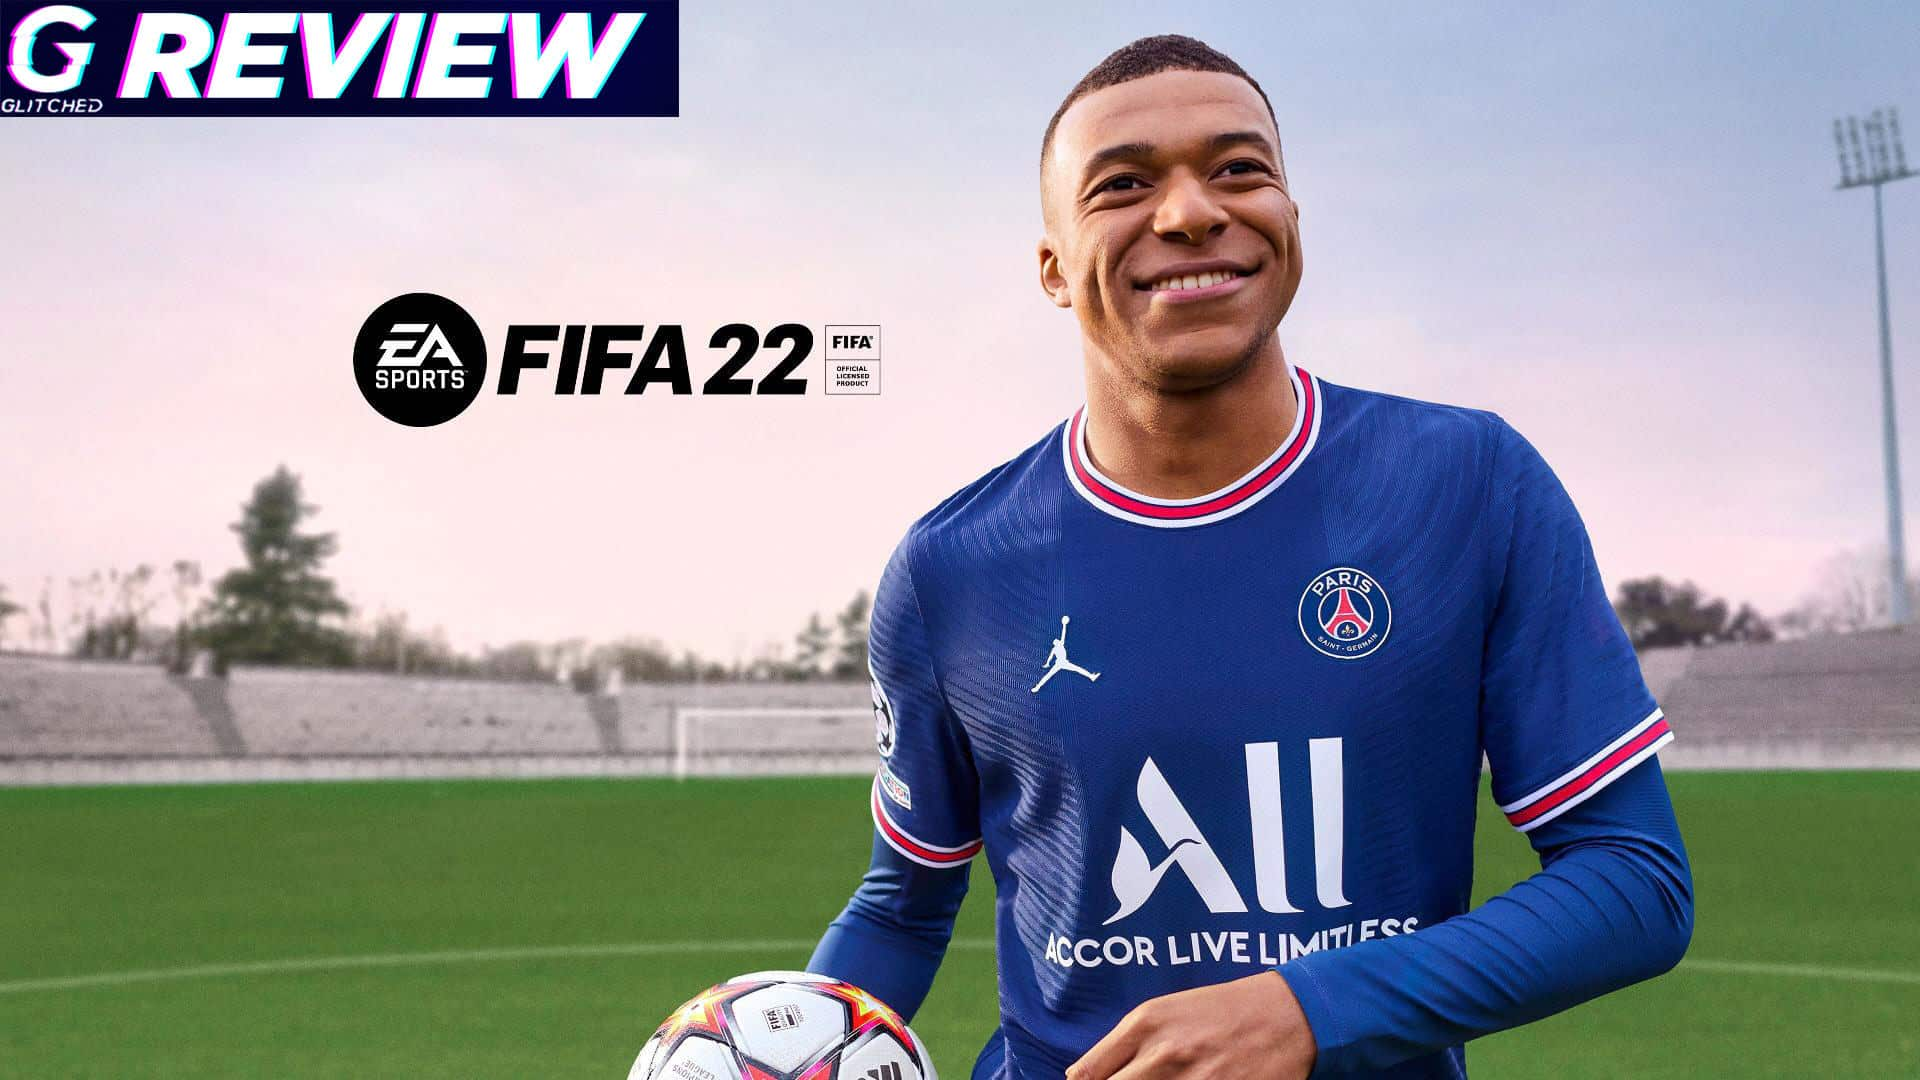 FIFA 22 Review